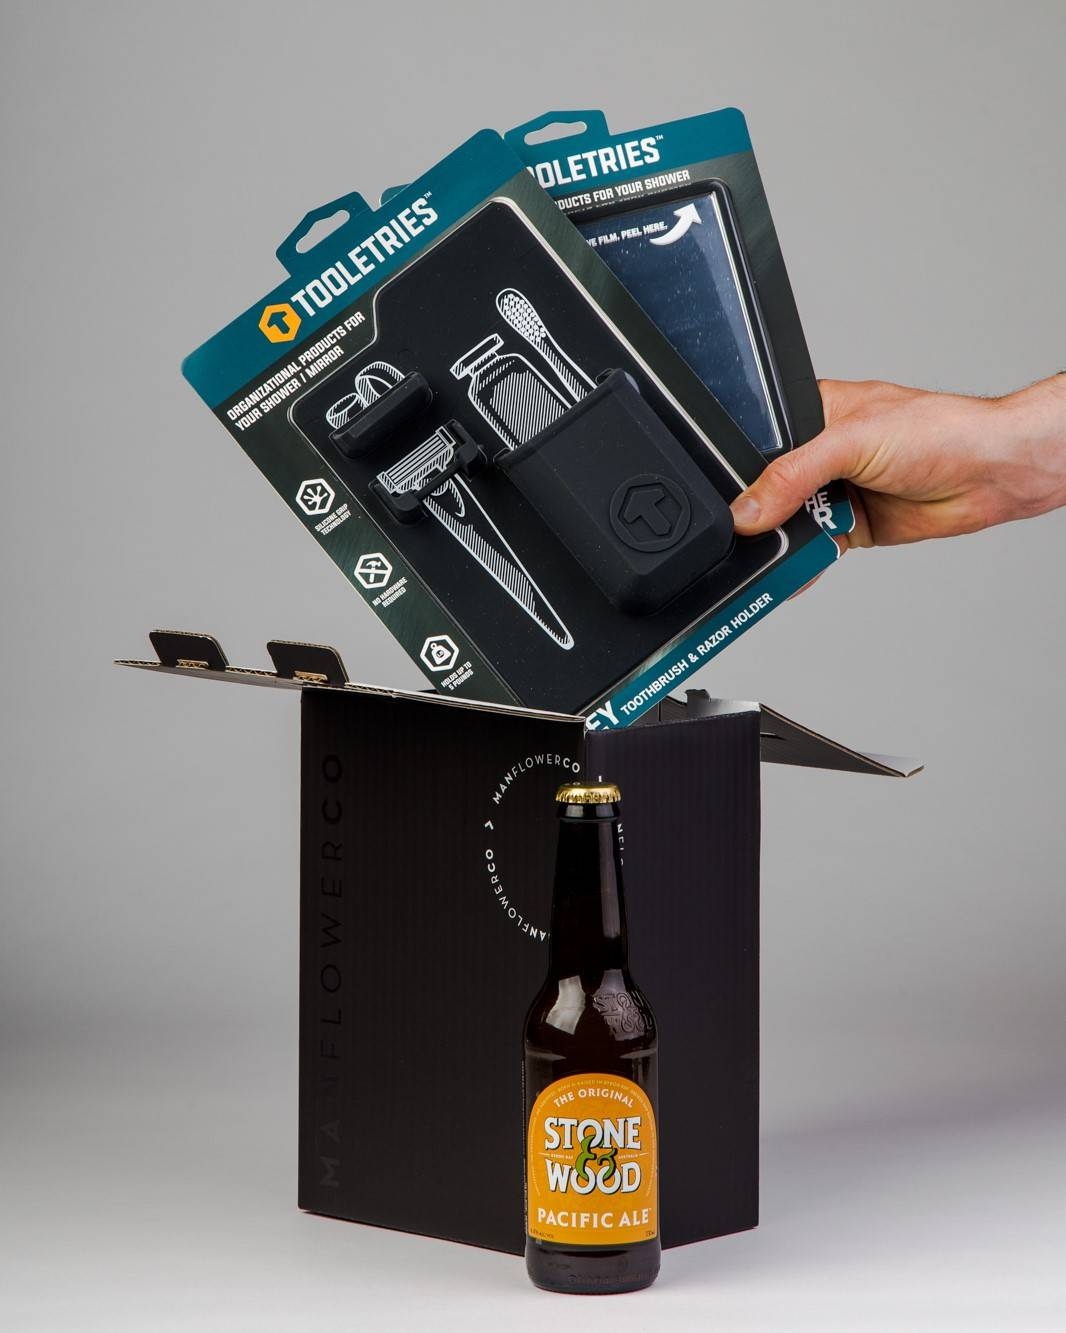 Tooletries + Beer, part of Manflower Co's range of holiday gifts for men.